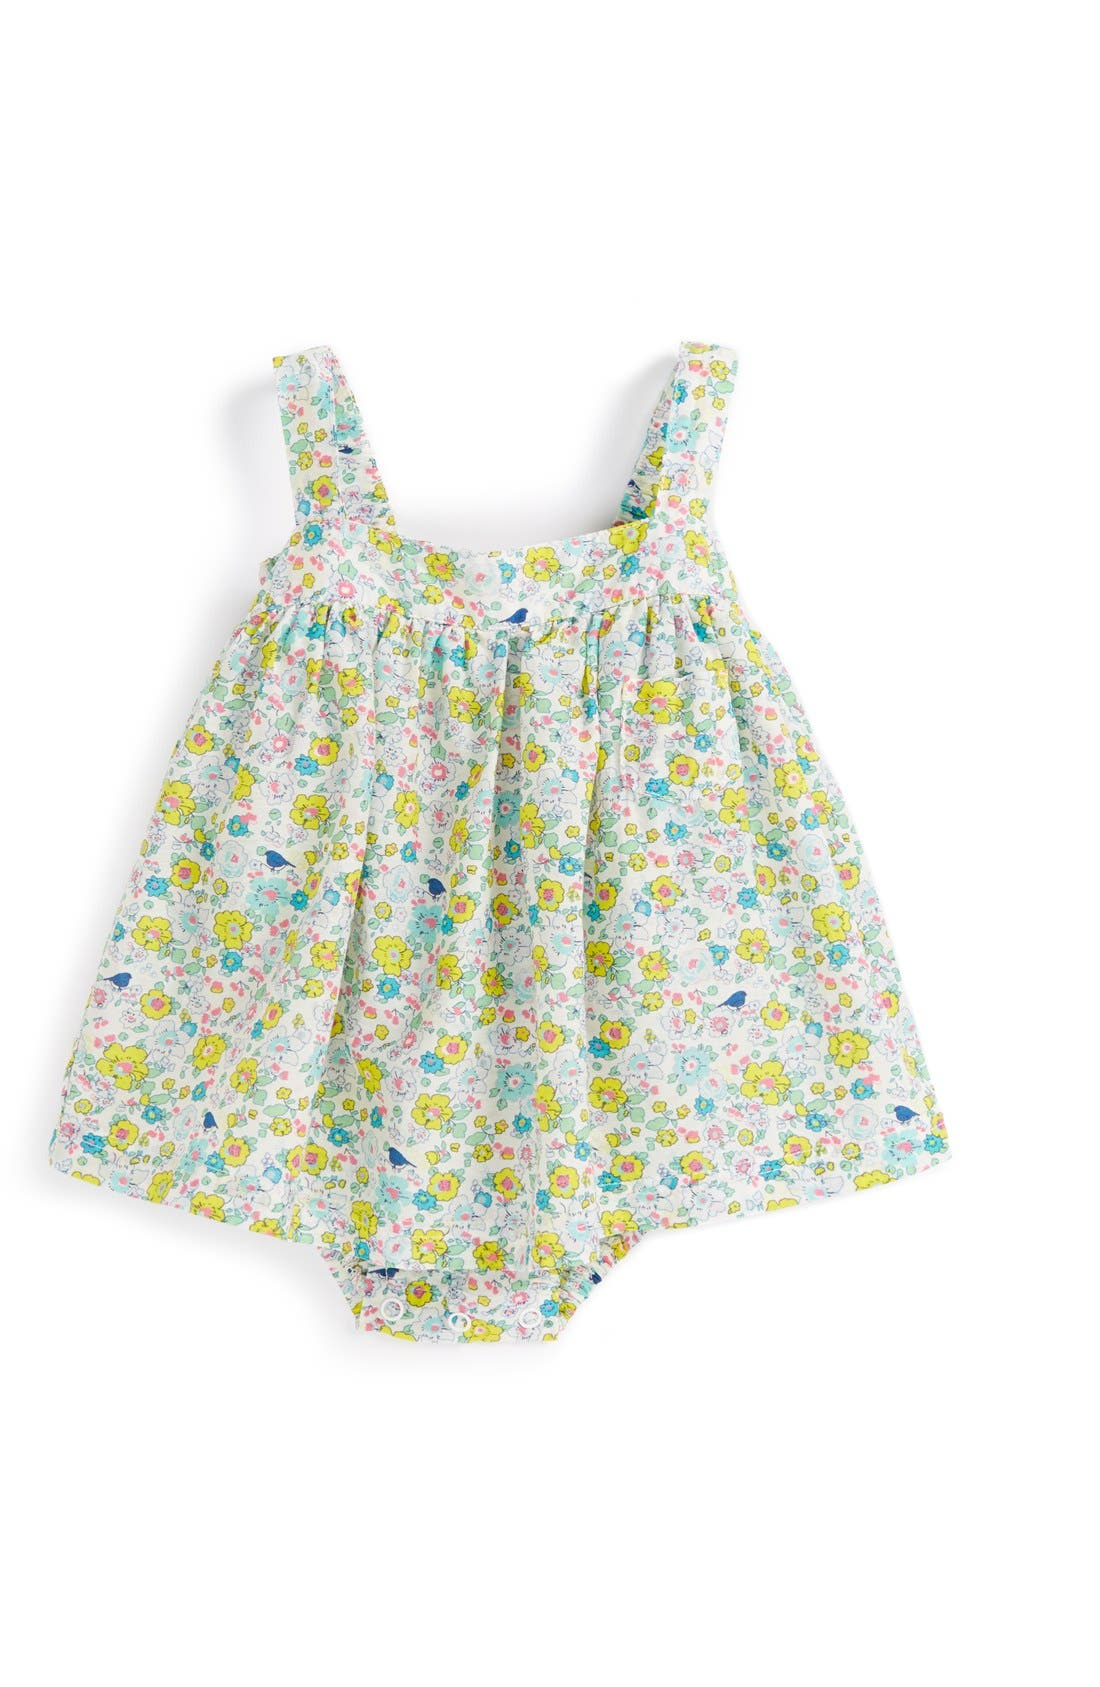 Alternate Image 1 Selected - egg by susan lazar Bubble Dress (Baby Girls)